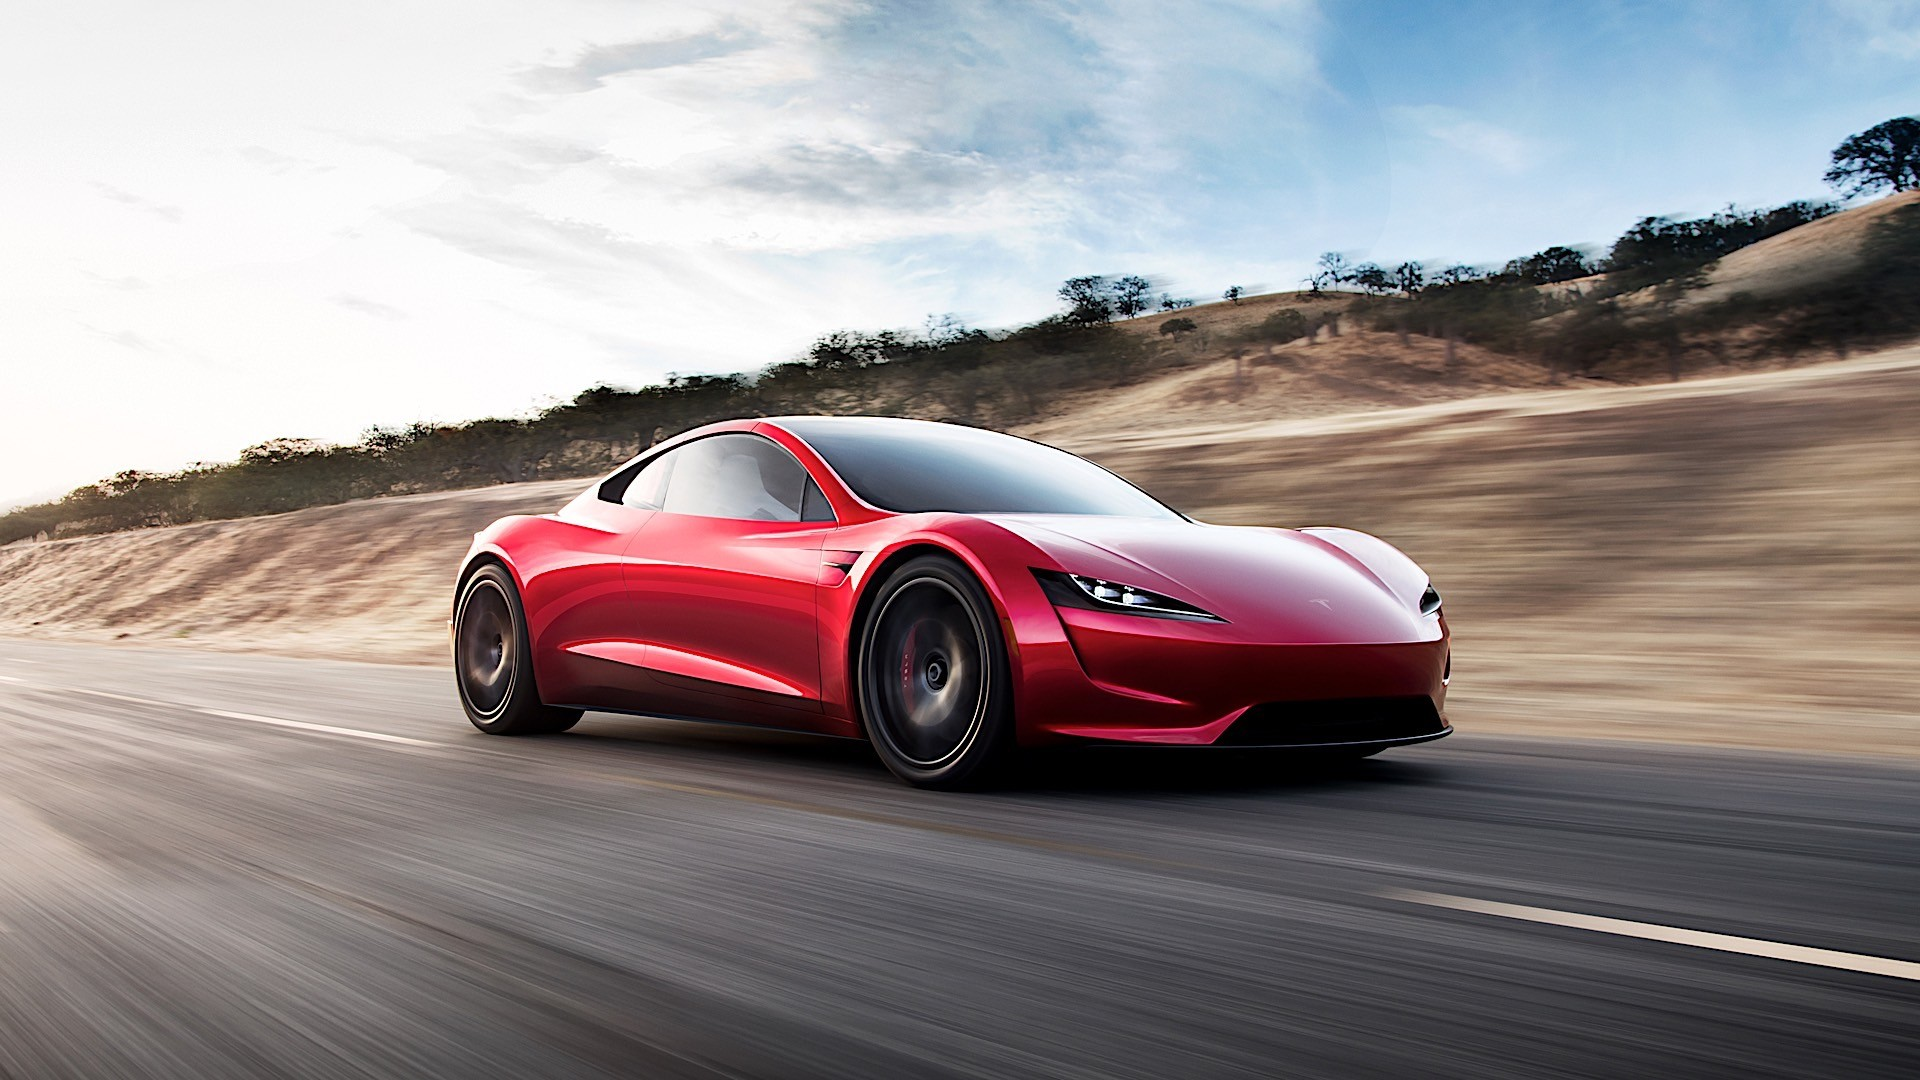 Tesla Roadster 'SpaceX' package to get rocket thrusters?